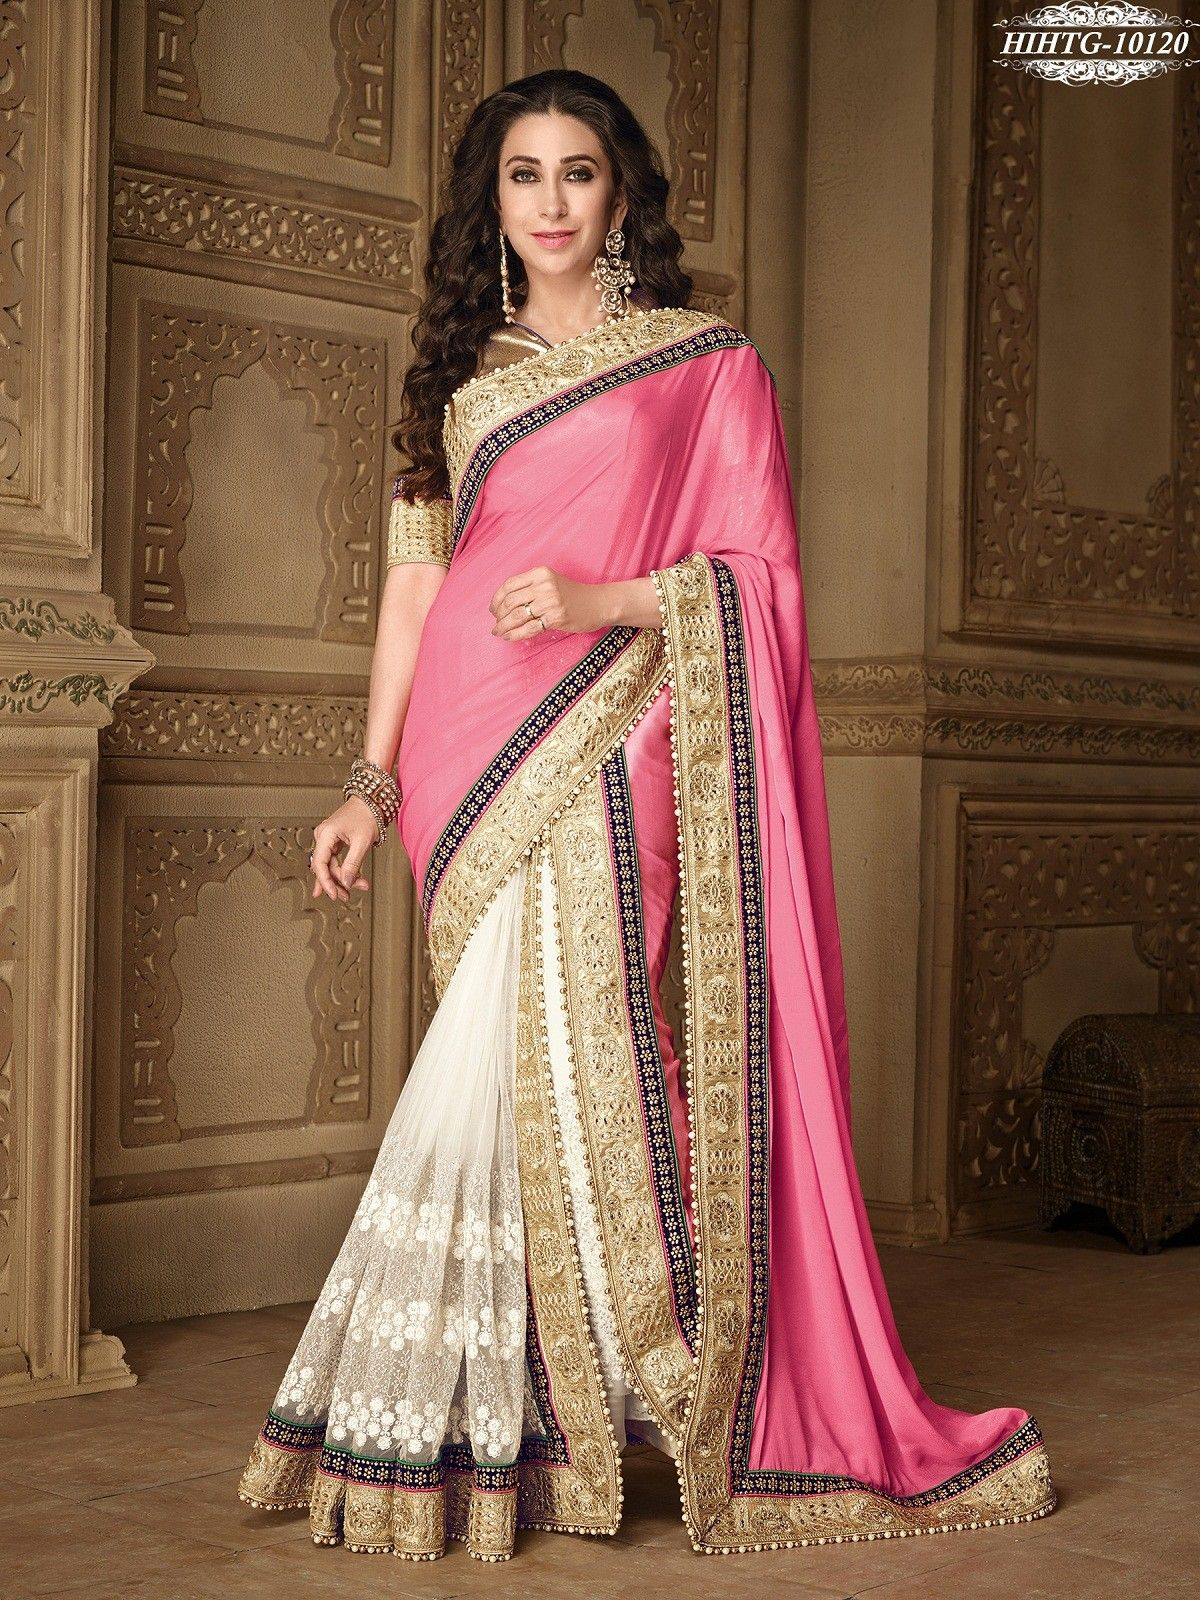 29646e2ae0dd2 Pink   White Colour Net   Chiffon Embroidery 2 Part Saree With Unstitched  Blouse Piece  bandbaajaa.com  bandbaajaa  weddingsarees  weddingsaris ...